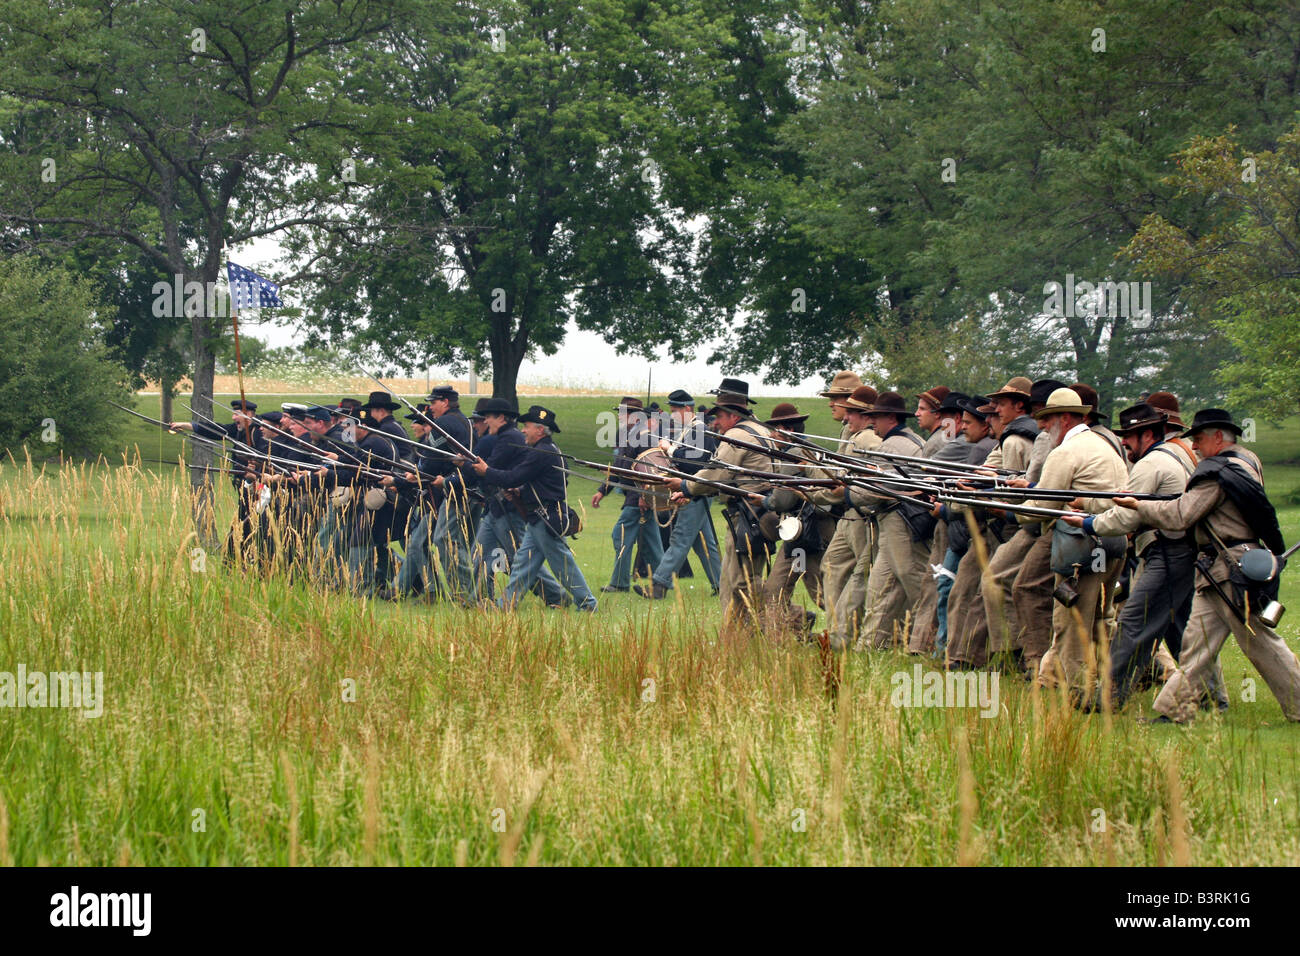 Confederate and Union Soldiers advancing towards the crowd at a Civil War Encampment Reenactment Stock Photo